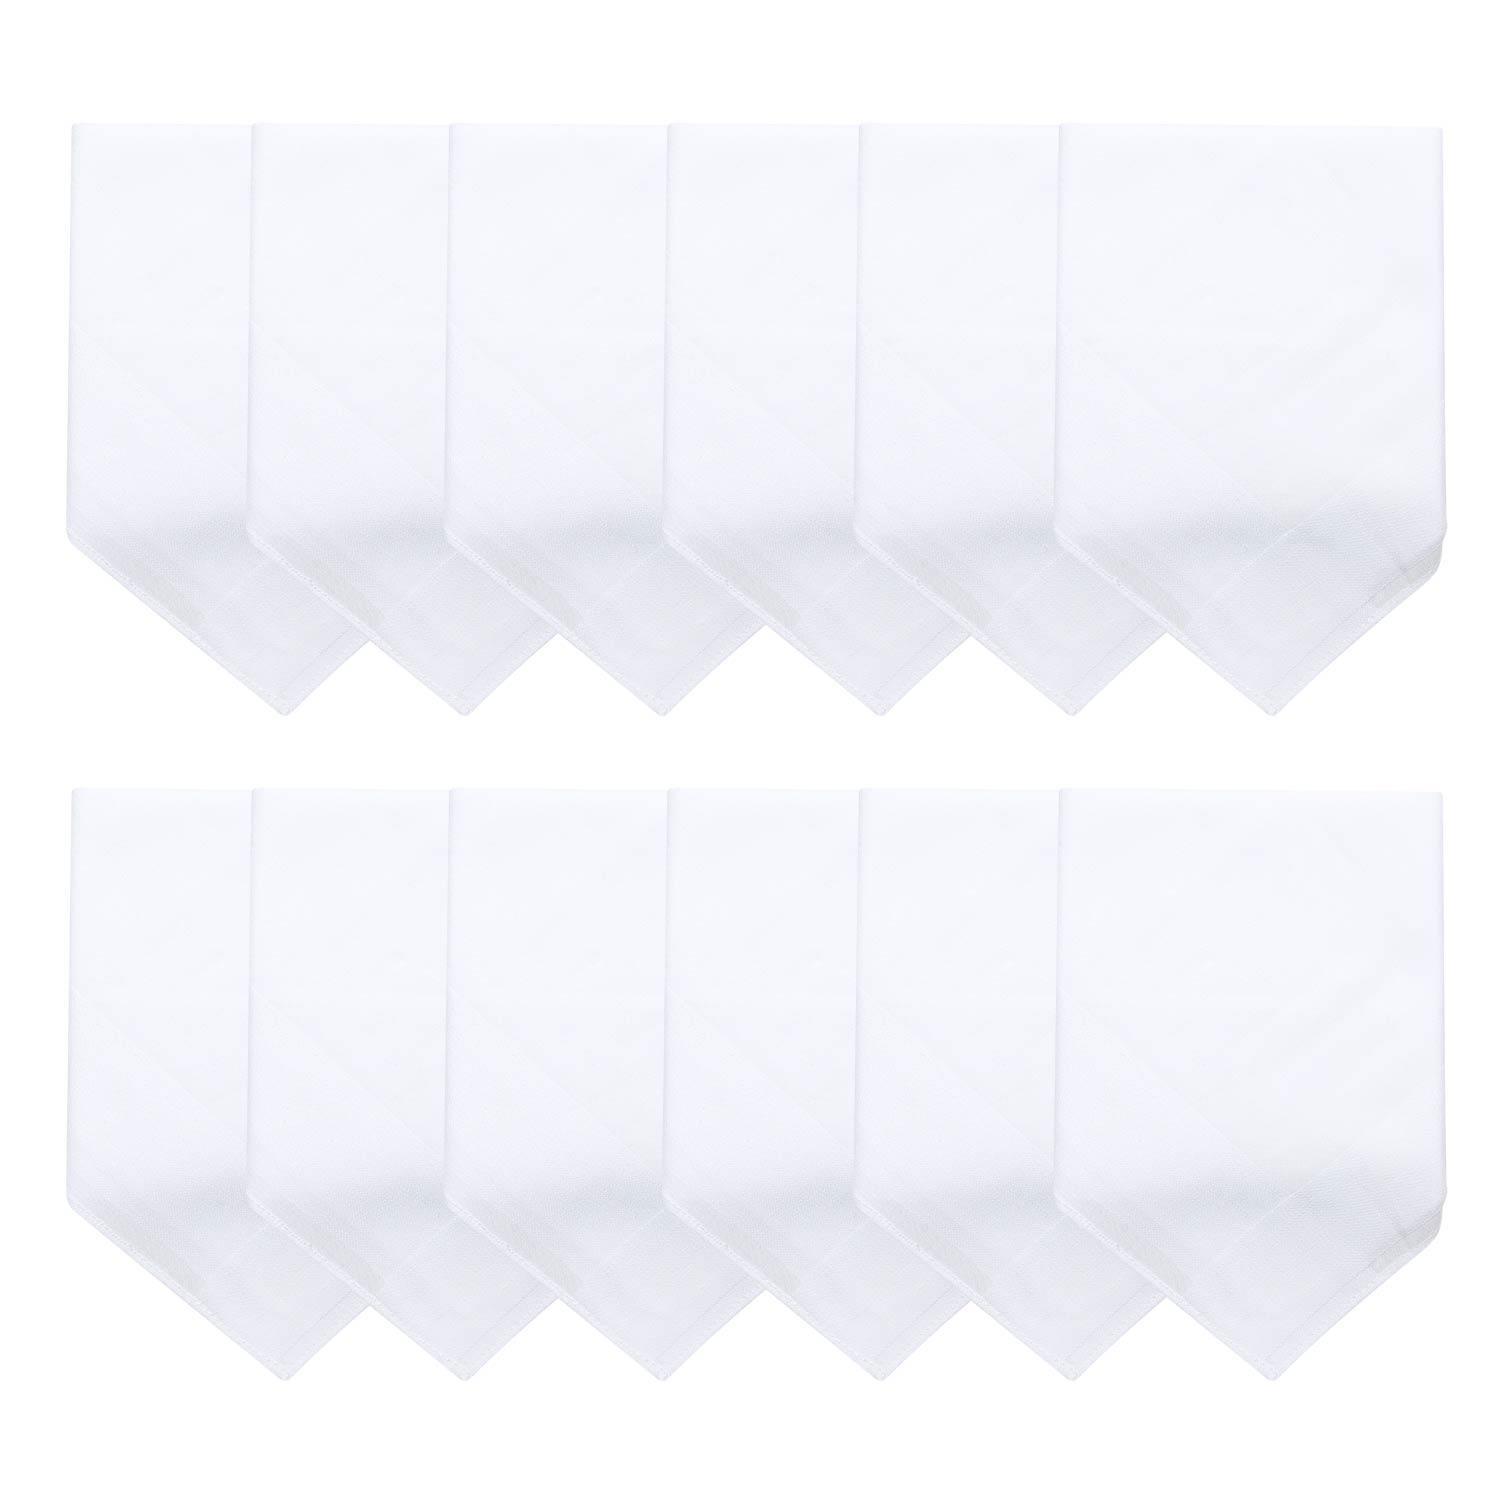 Men's Cotton Handkerchief in White with White Stripes-Pack of 12